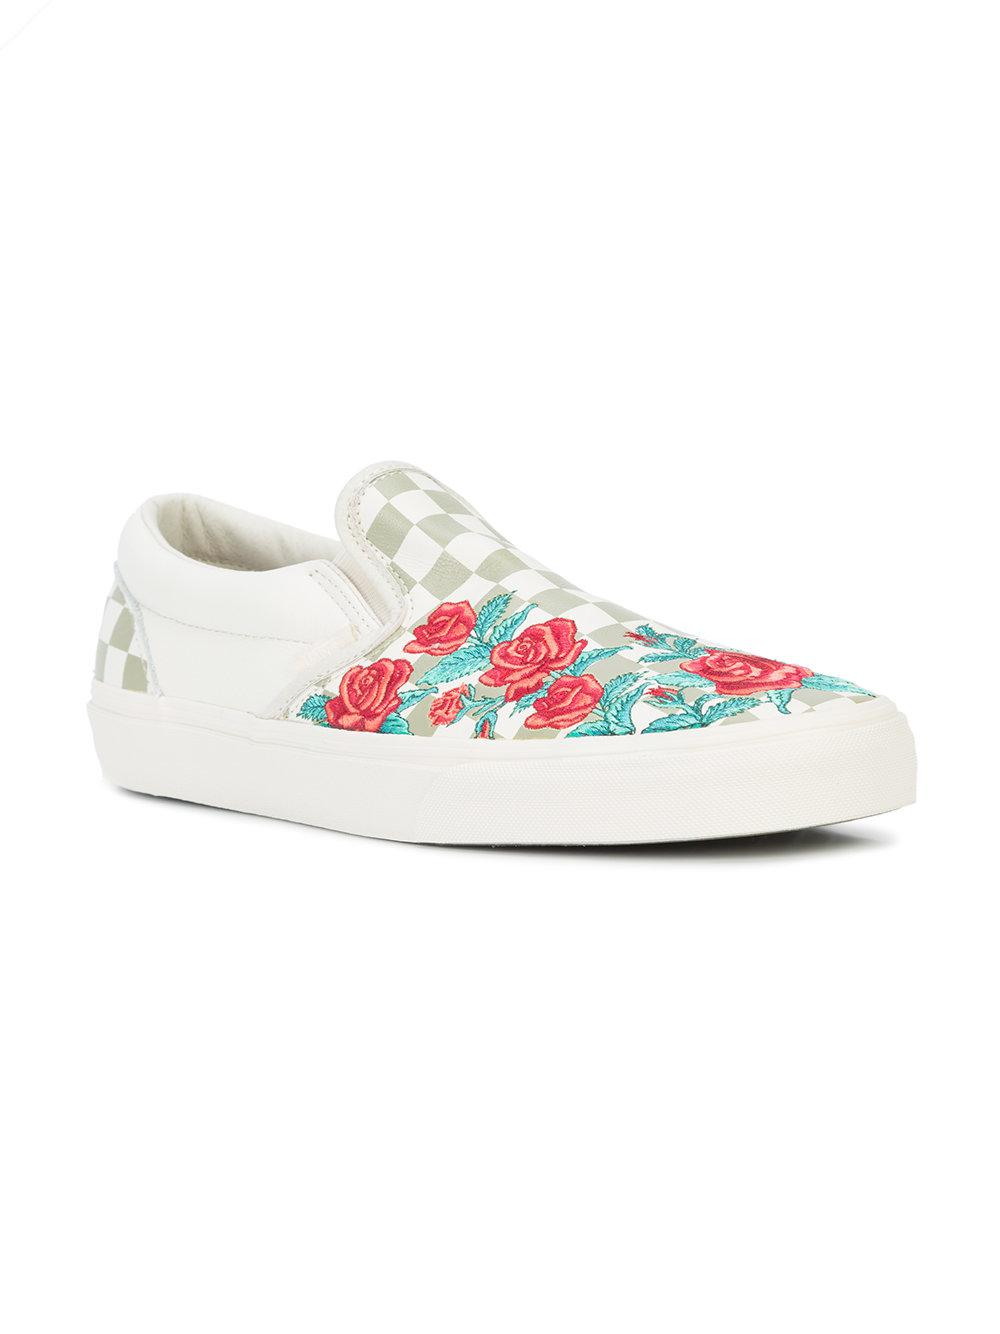 11fc4f32422 Lyst - Vans Rose Embroidery Slip-on Dx Sneakers in White